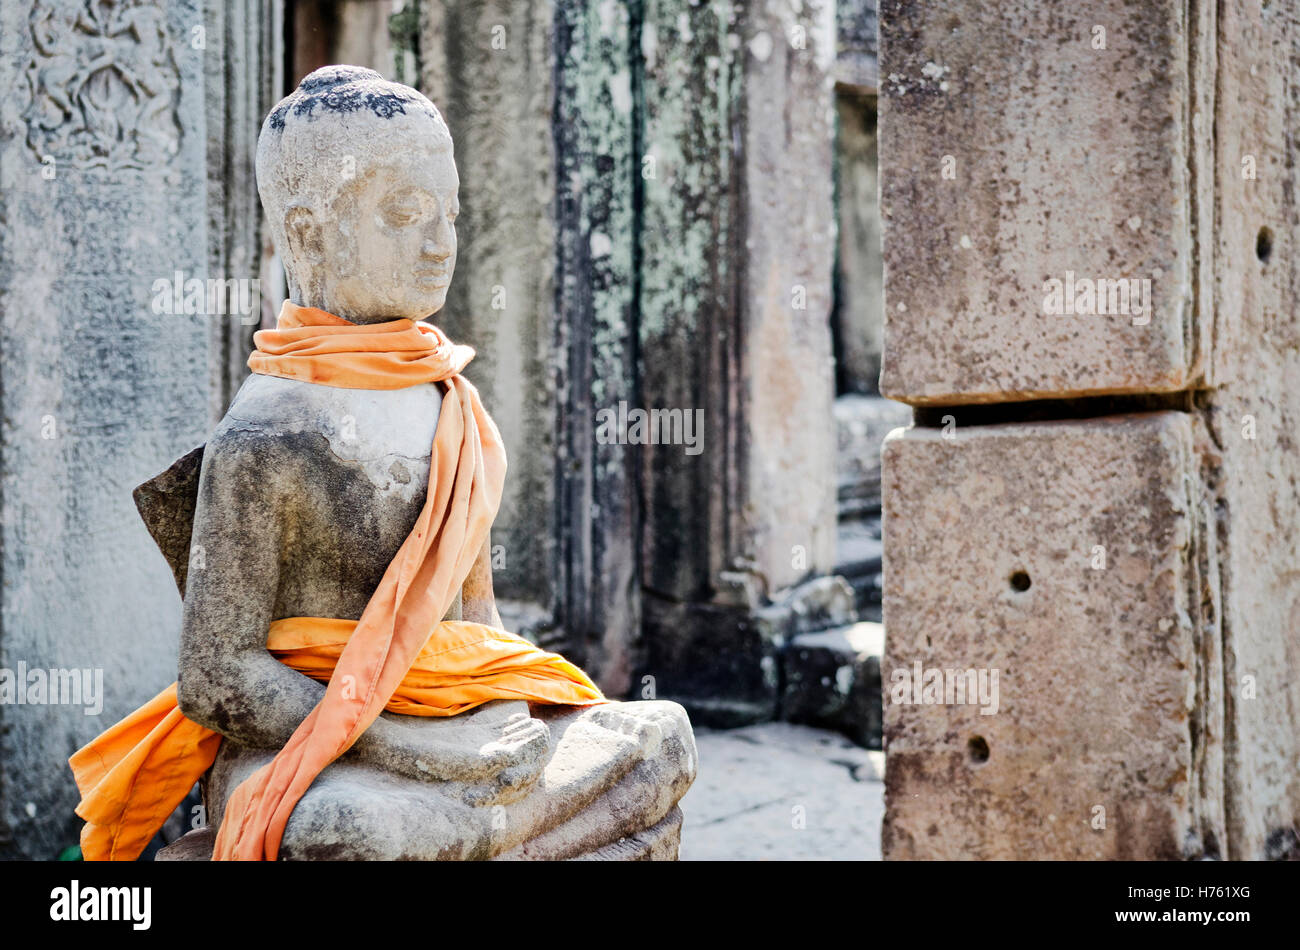 cambodian ancient buddha statue in famous landmark angkor wat temple siem reap cambodia - Stock Image